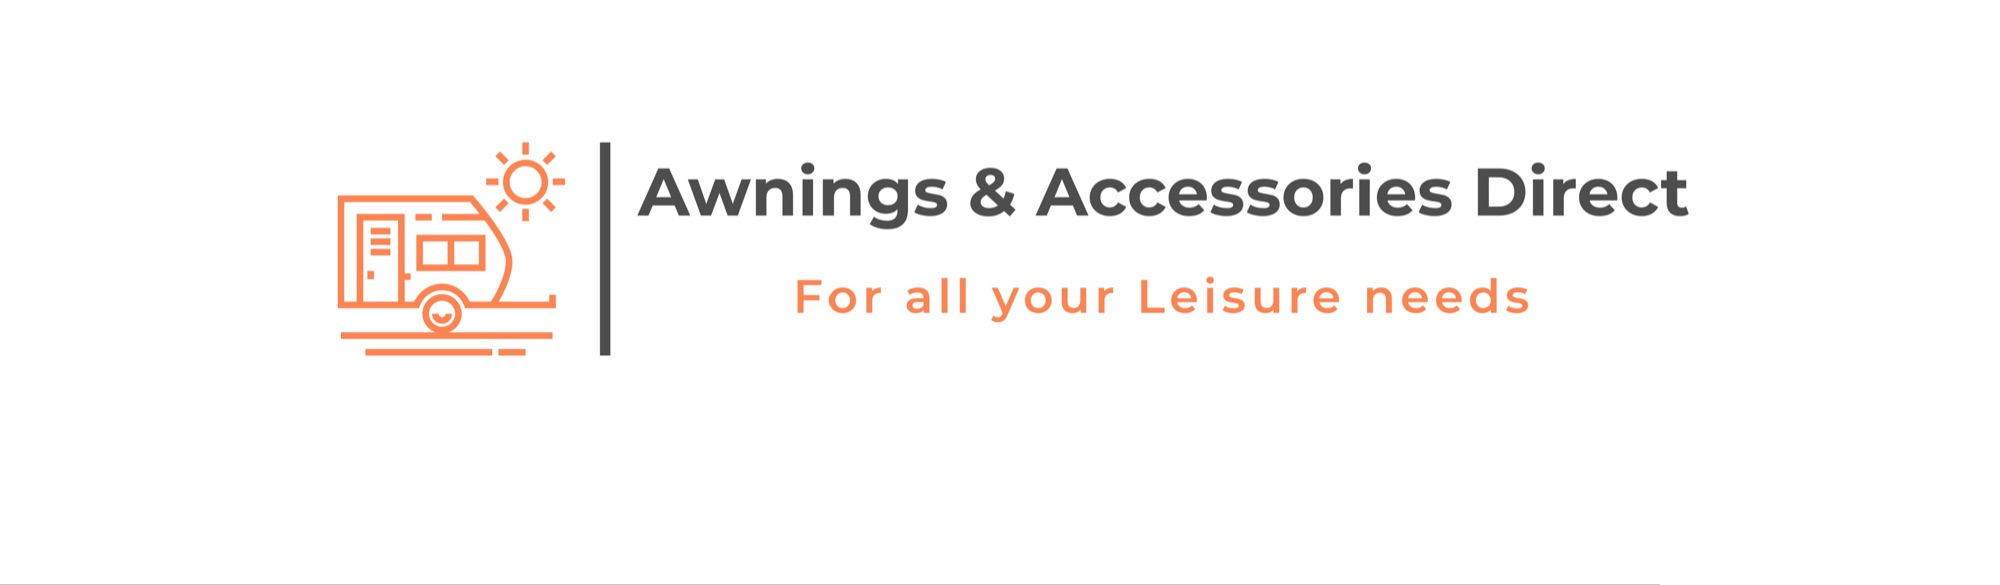 Awnings and Accessories Direct